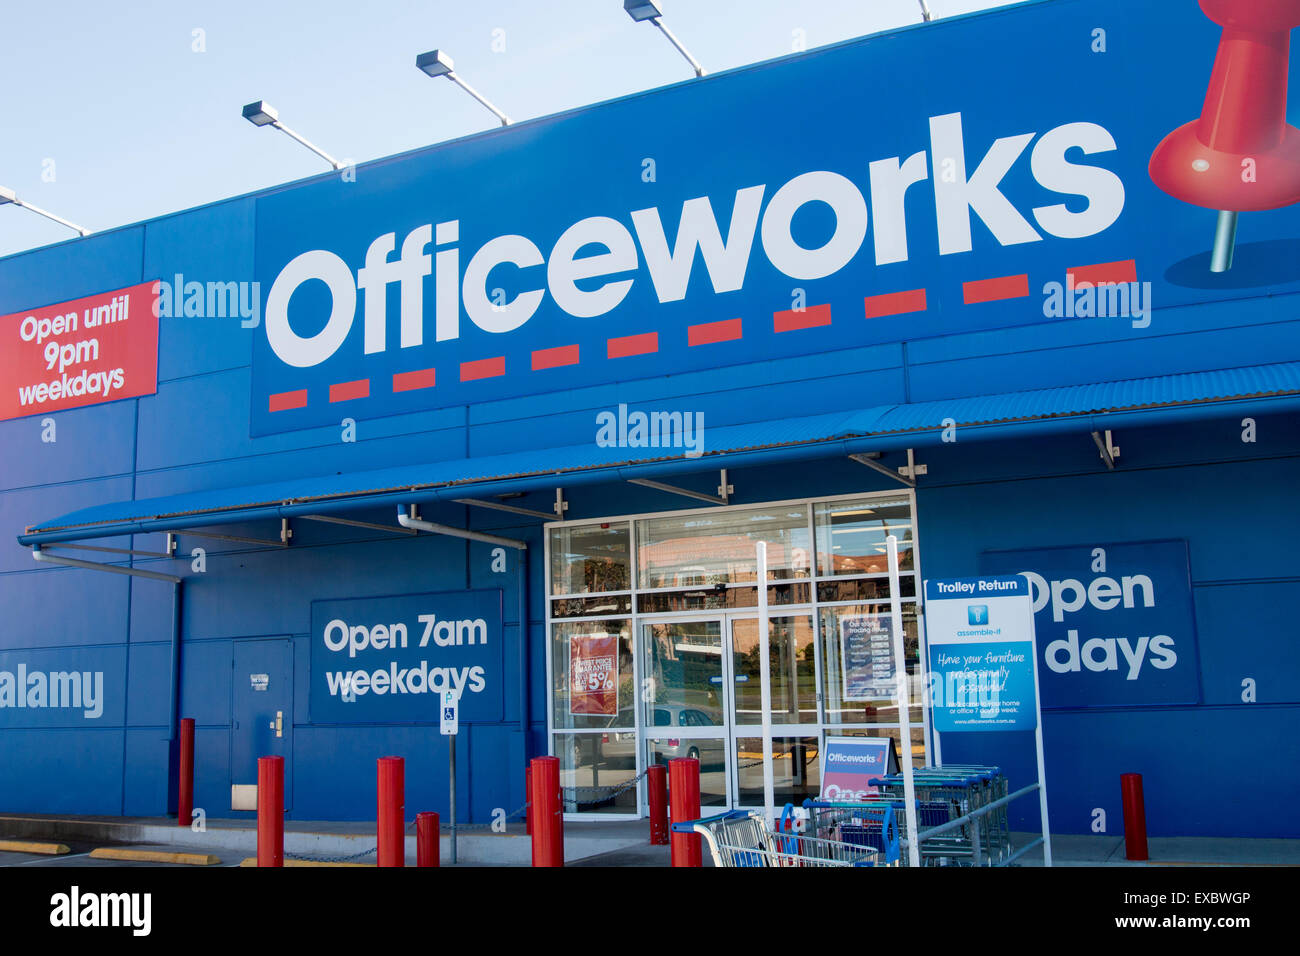 Office Works Sydney Officeworks Store In North Sydney Australia Based On The